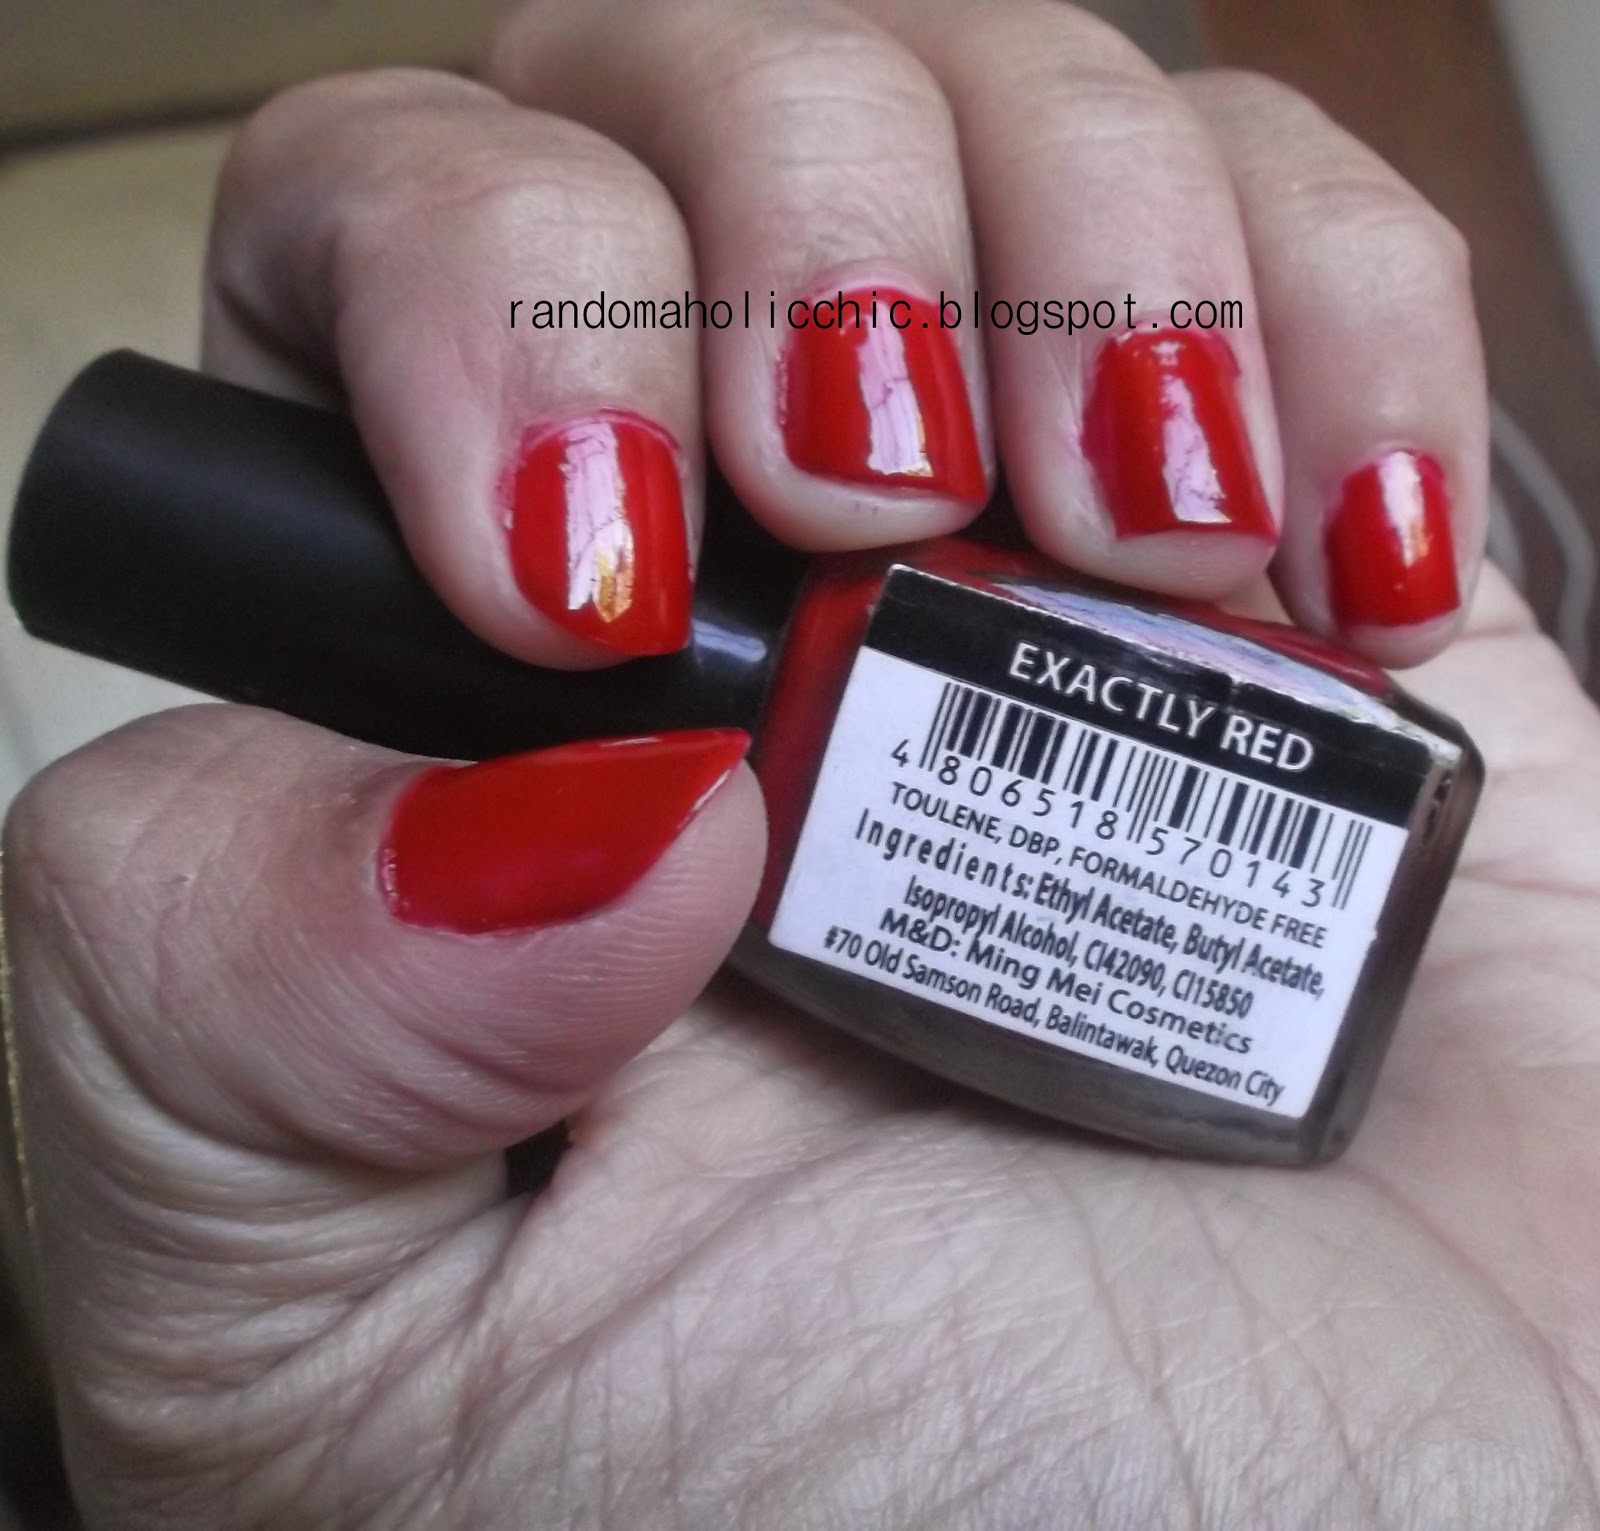 Randomaholic Chic: NOTD: Exactly Red, My Kind of Red